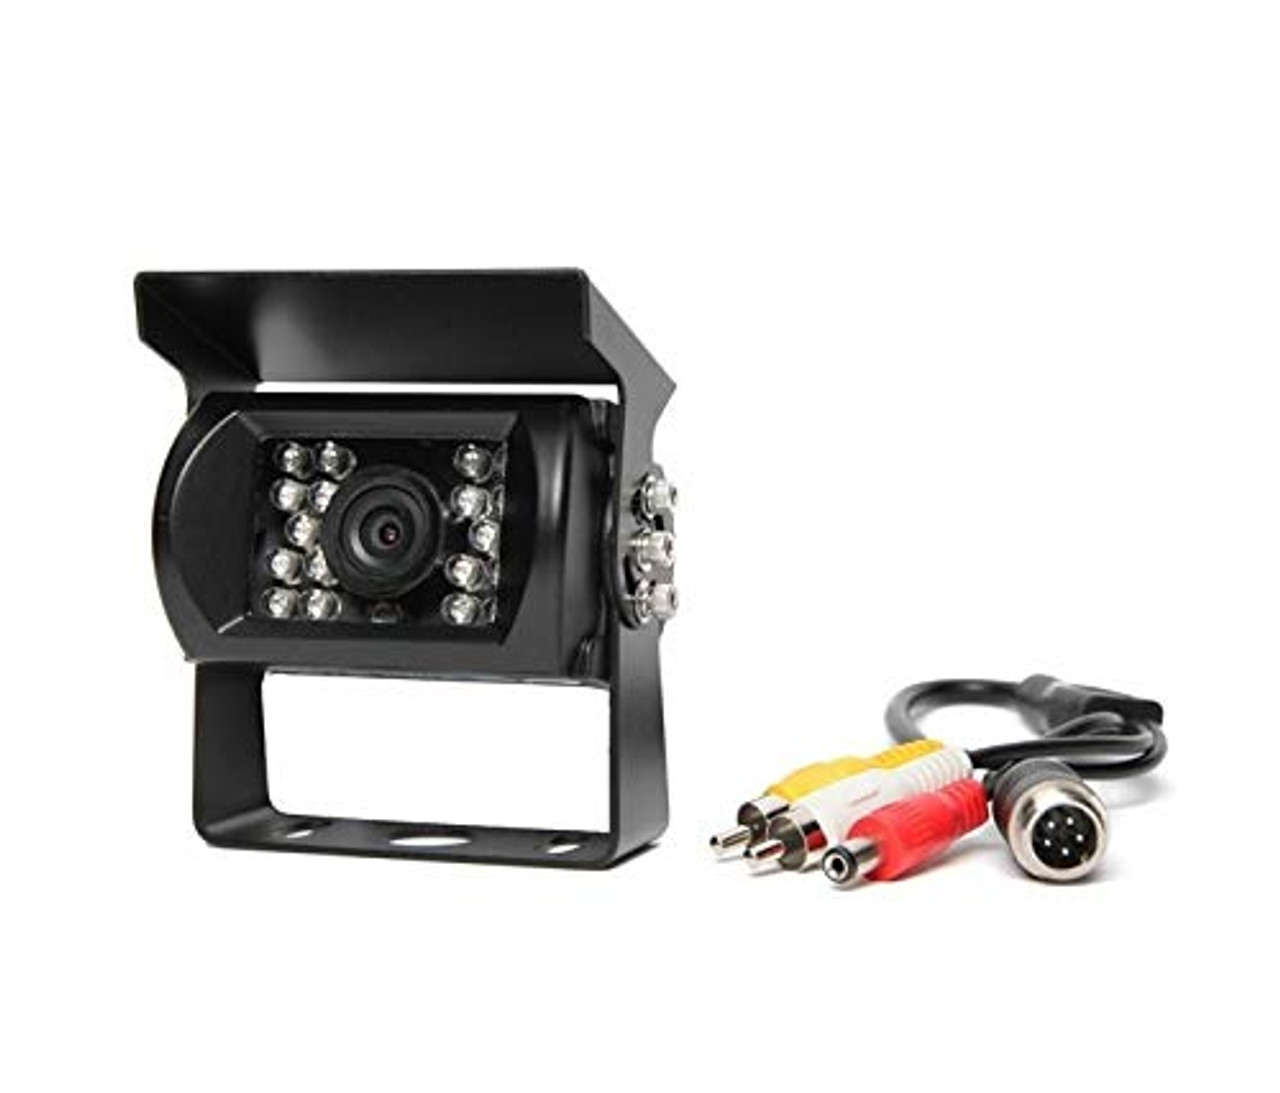 Rear View Safety 130 Degree Camera W/ 18 Infra-Red Illuminators RVS-771 (RVS-771) | 0927VRJJCHZ